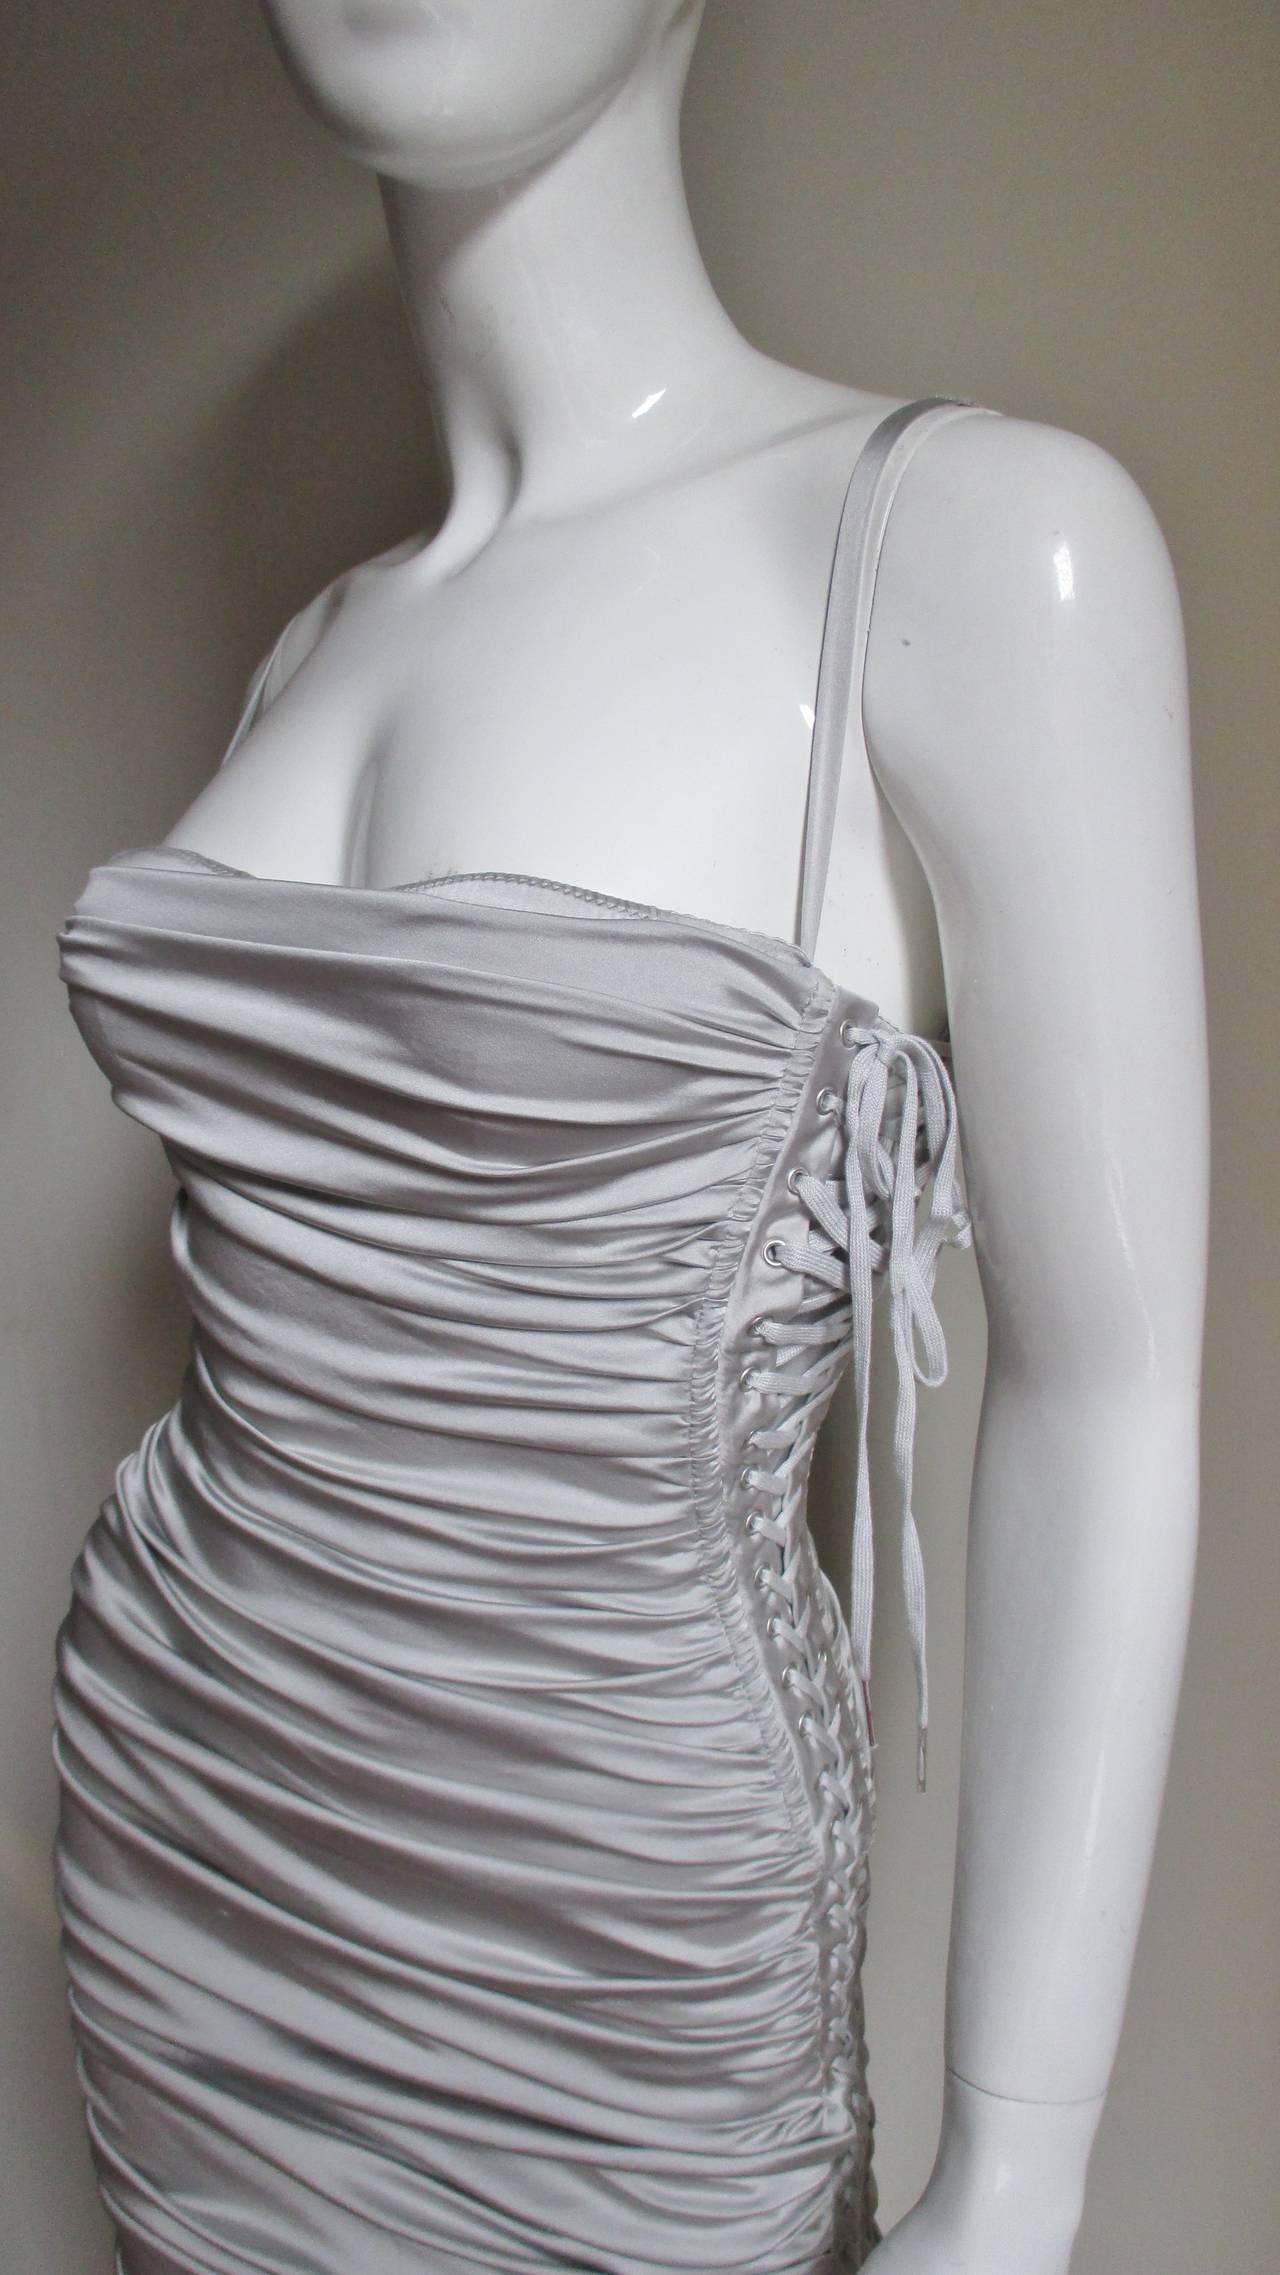 Dolce & Gabbana Side Lace-up Bra Dress In New Condition For Sale In New York, NY